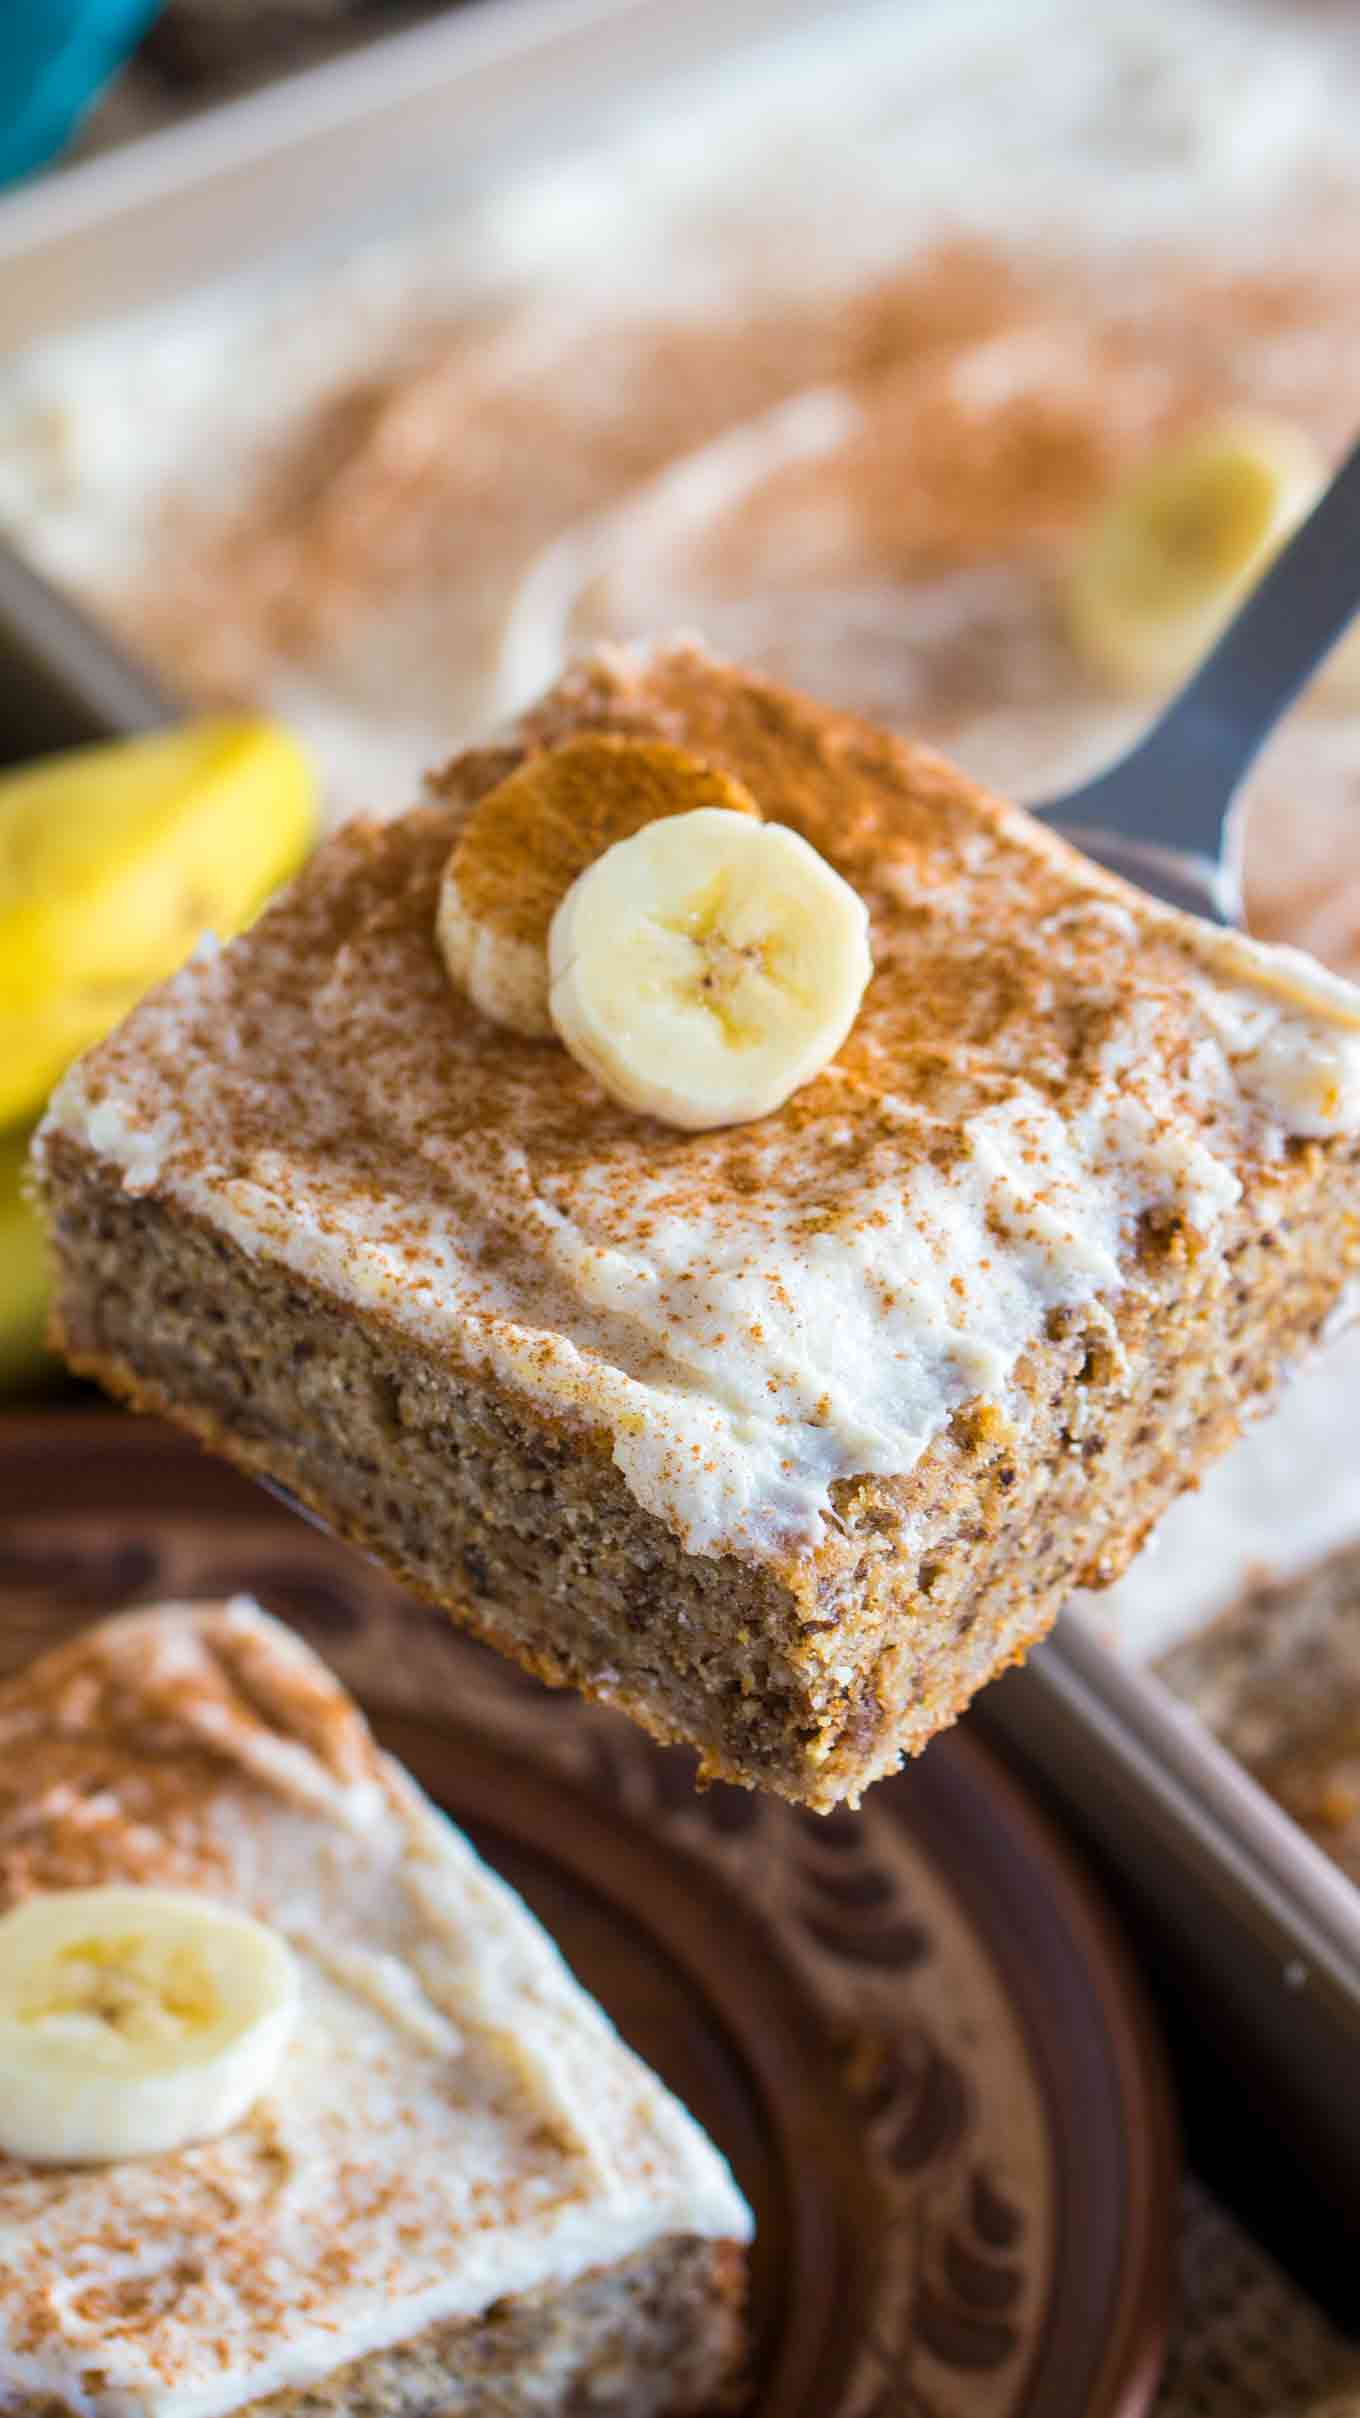 Best Ripe Banana Recipes Banana Nut Cake with Cream Cheese Frosting